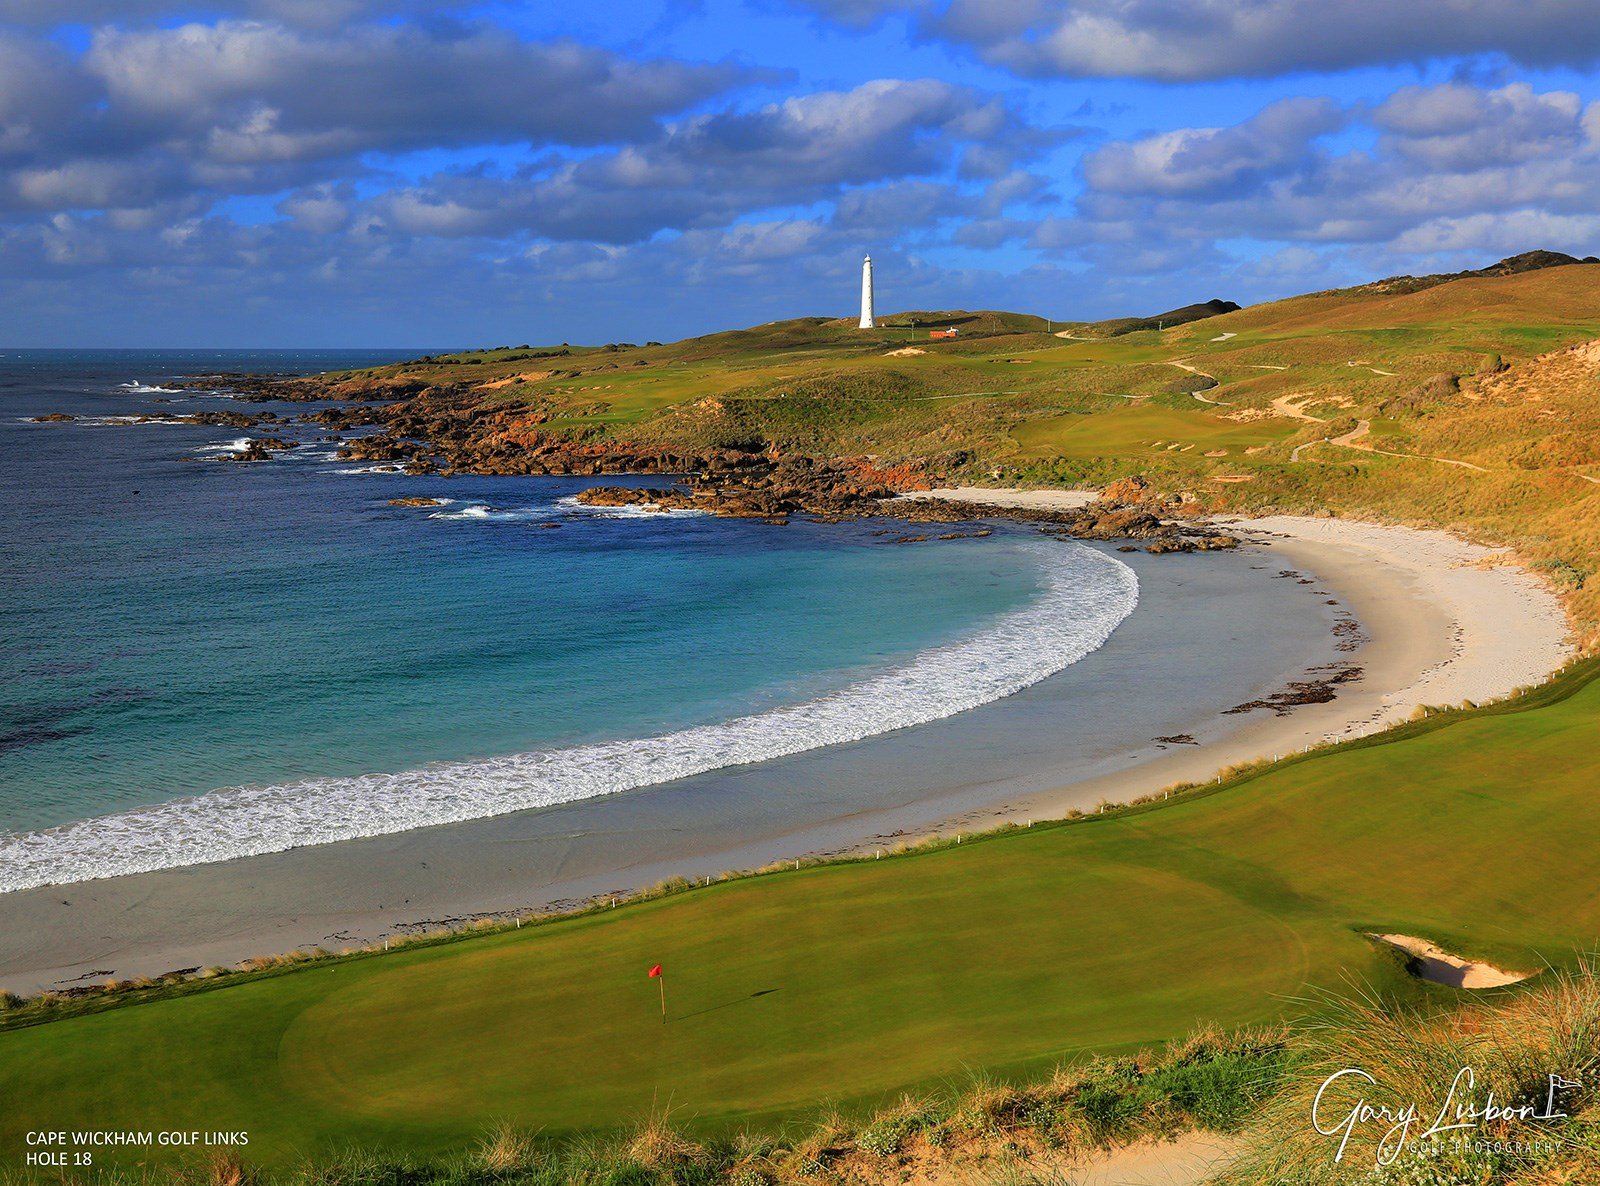 Cape Wickham Golf Course - King Island Hole 18